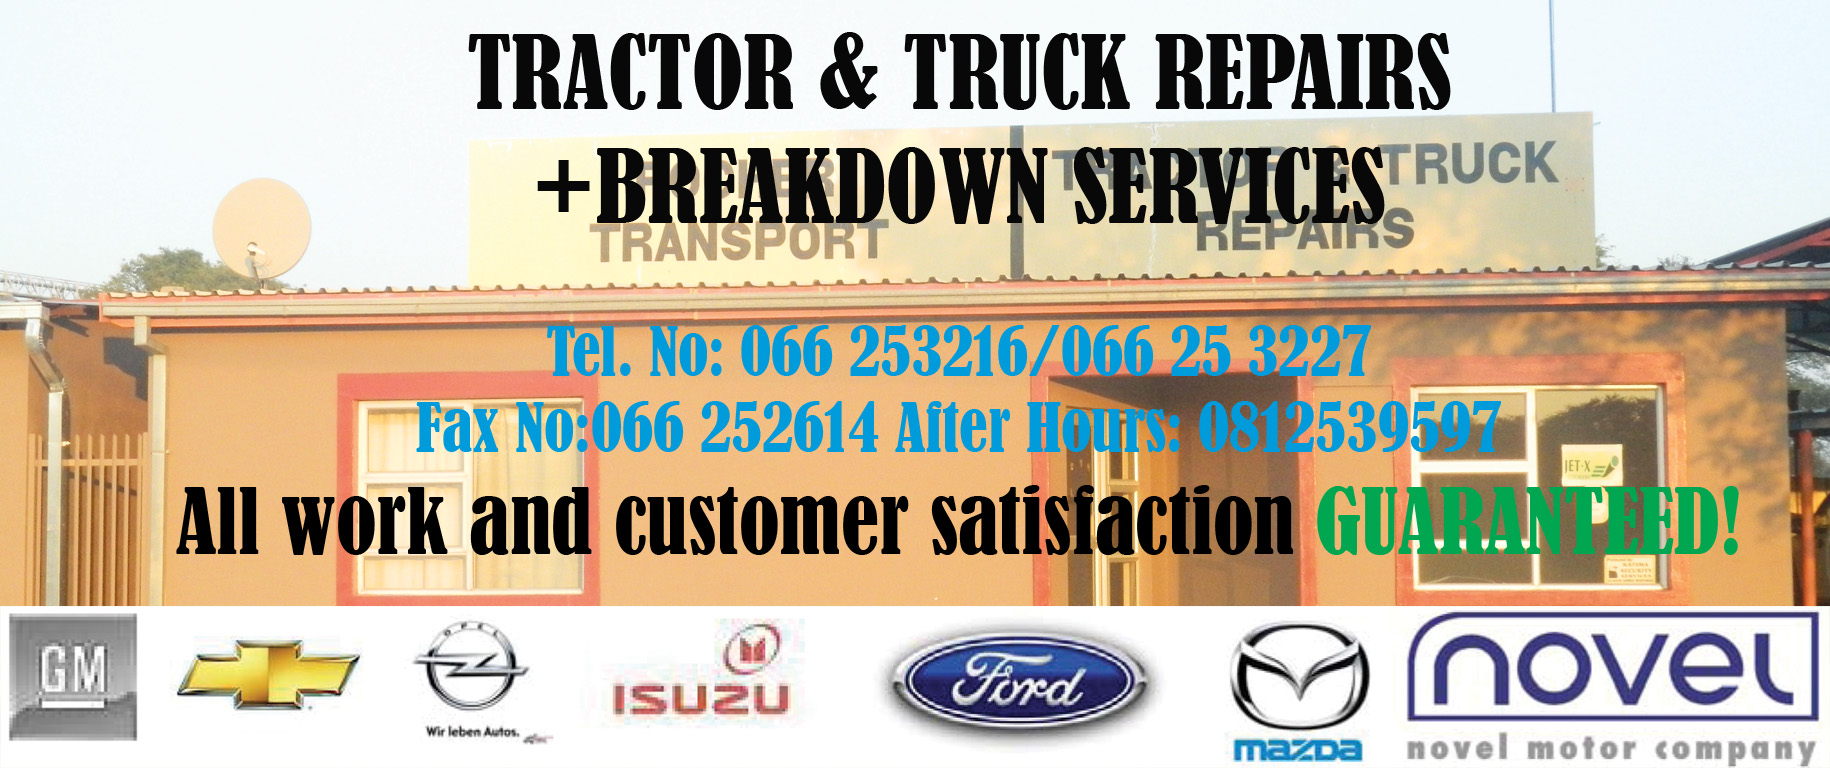 TRACTOR & TRUCK REPAIRS + BREAKDOWN SERVICES